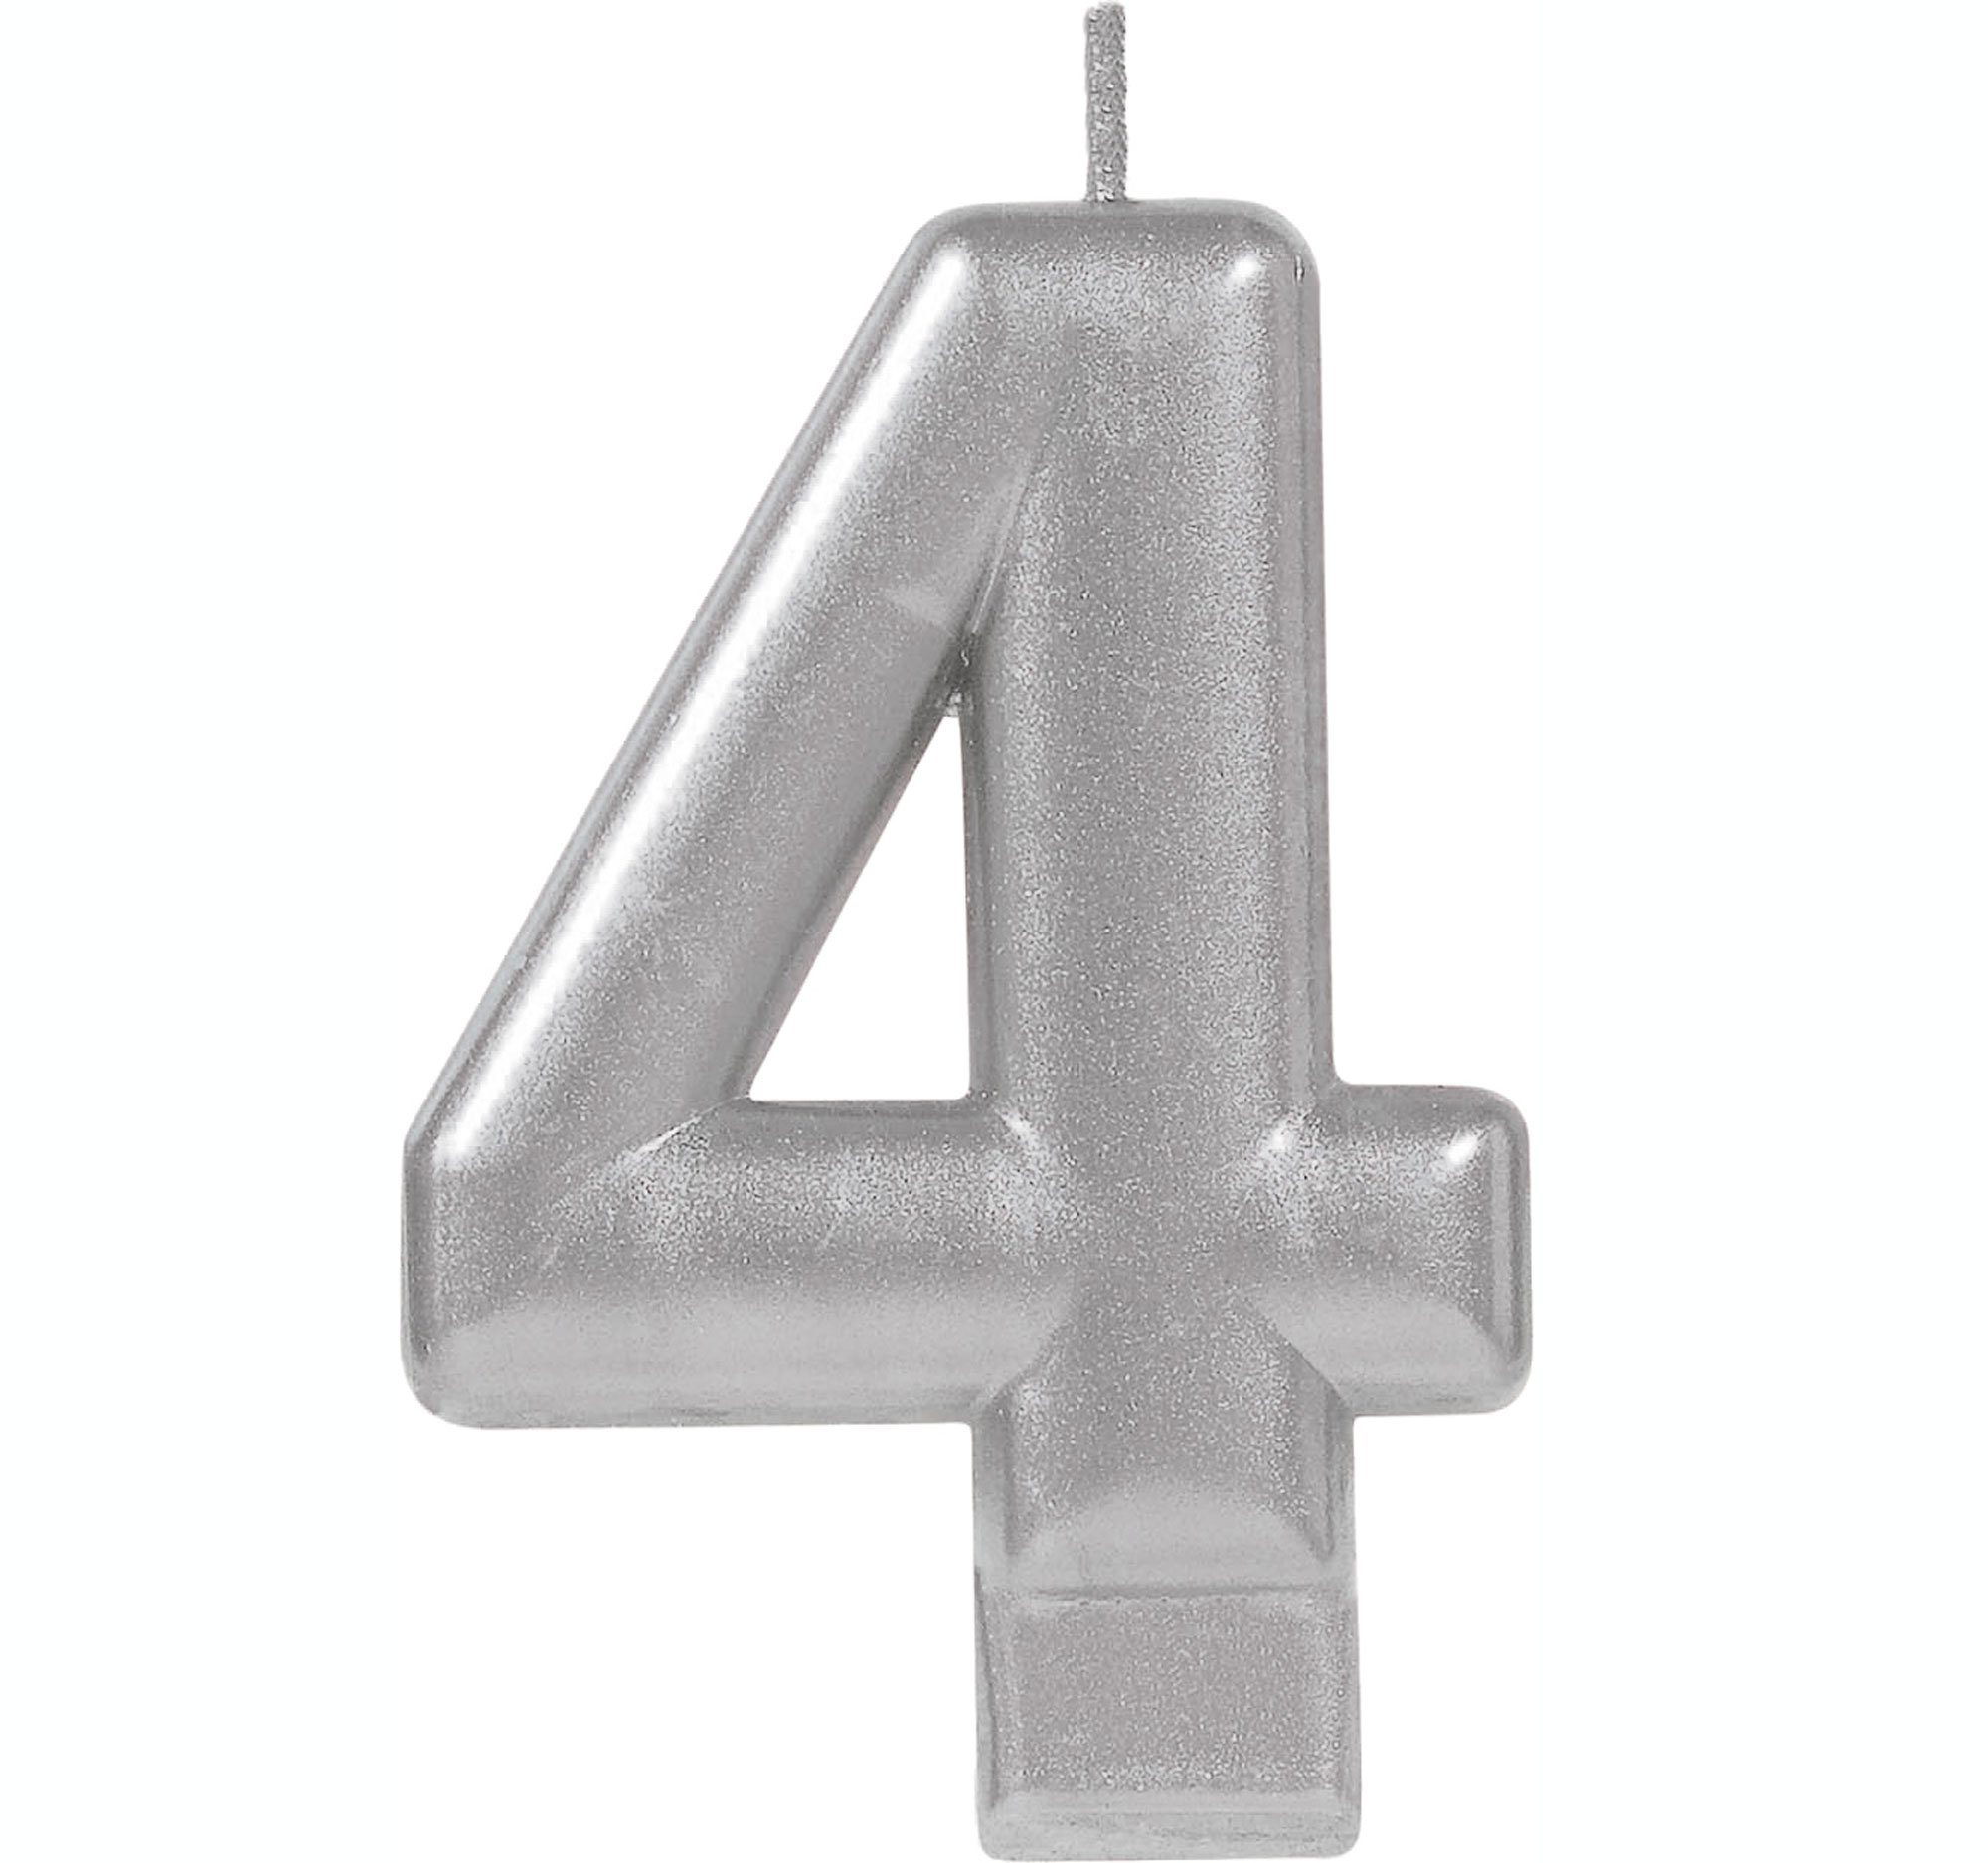 #4 Silver Metallic Numeral Moulded Candle